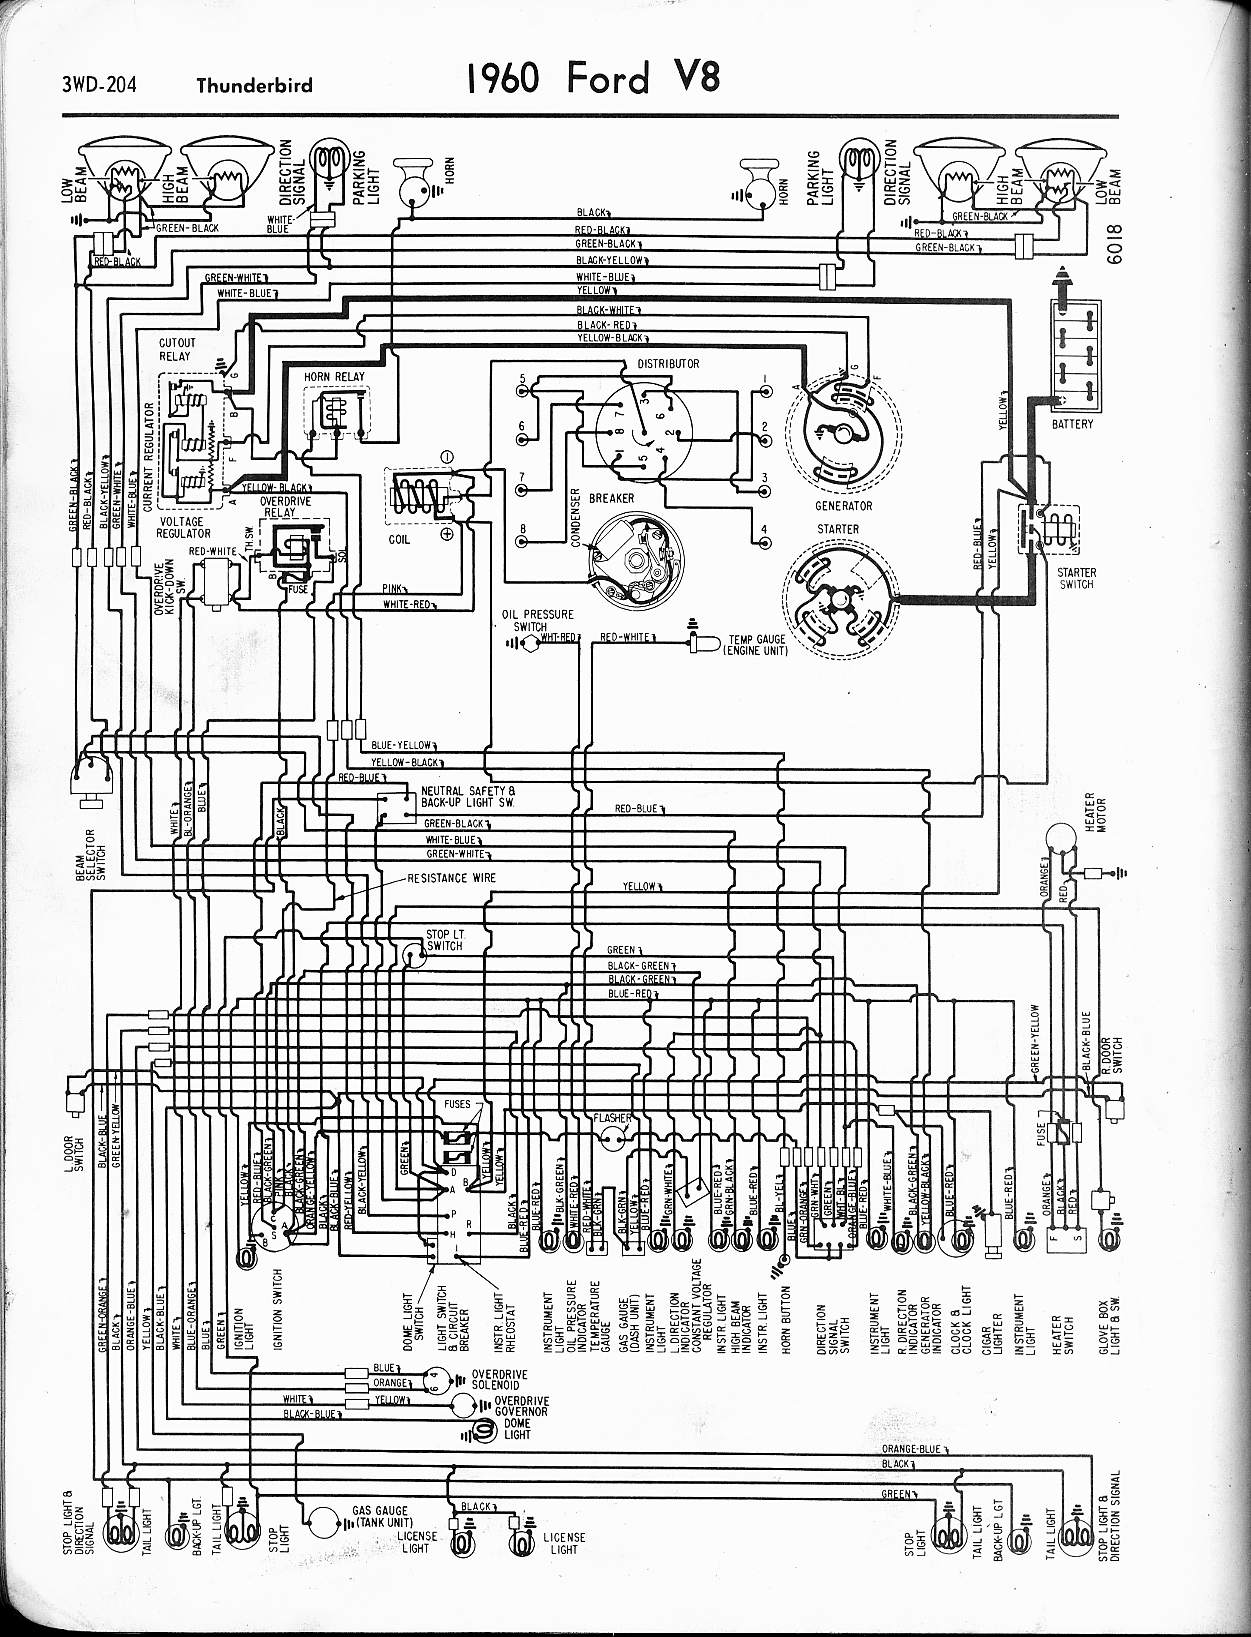 57 65 ford wiring diagrams 1960 thunderbird